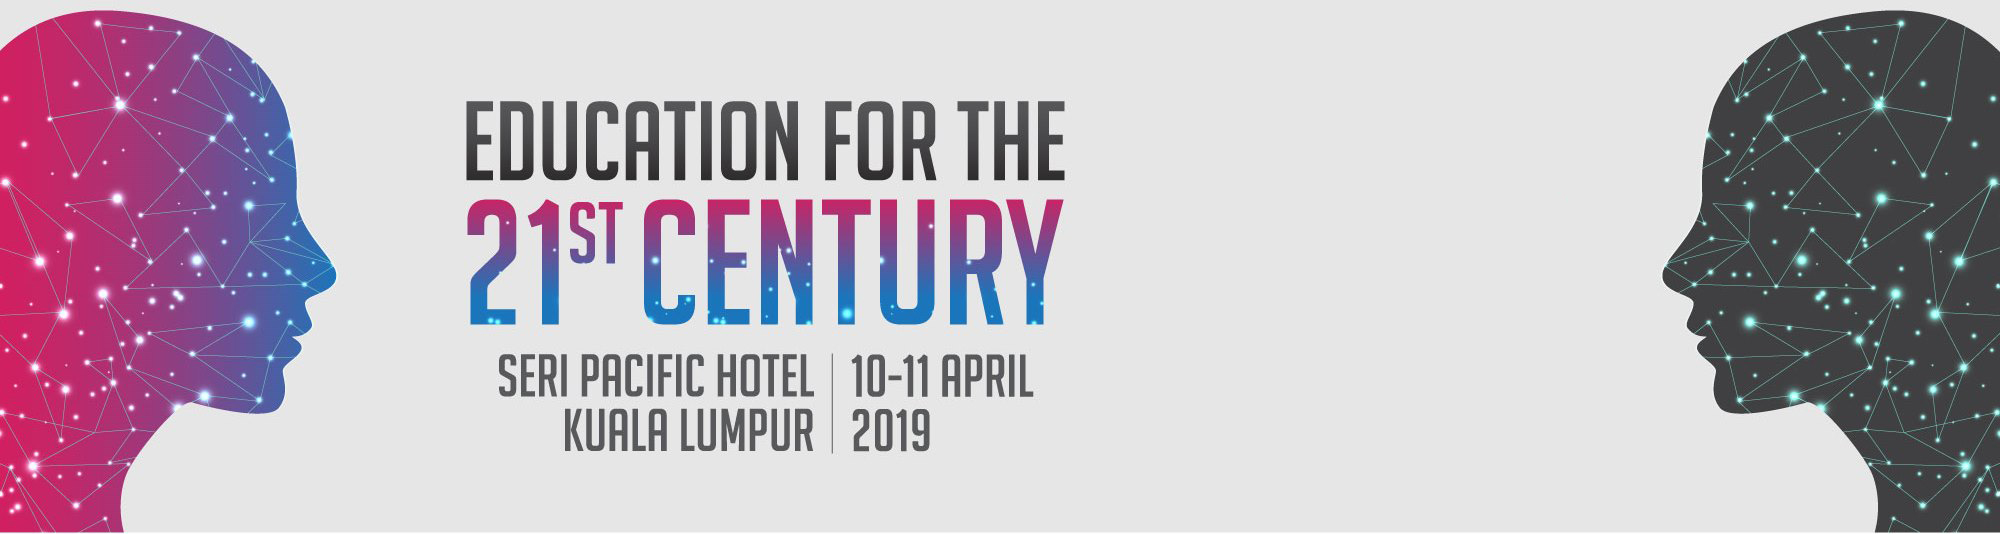 International Conference on Education (ICE 2019) | 10-11 APRIL 2019